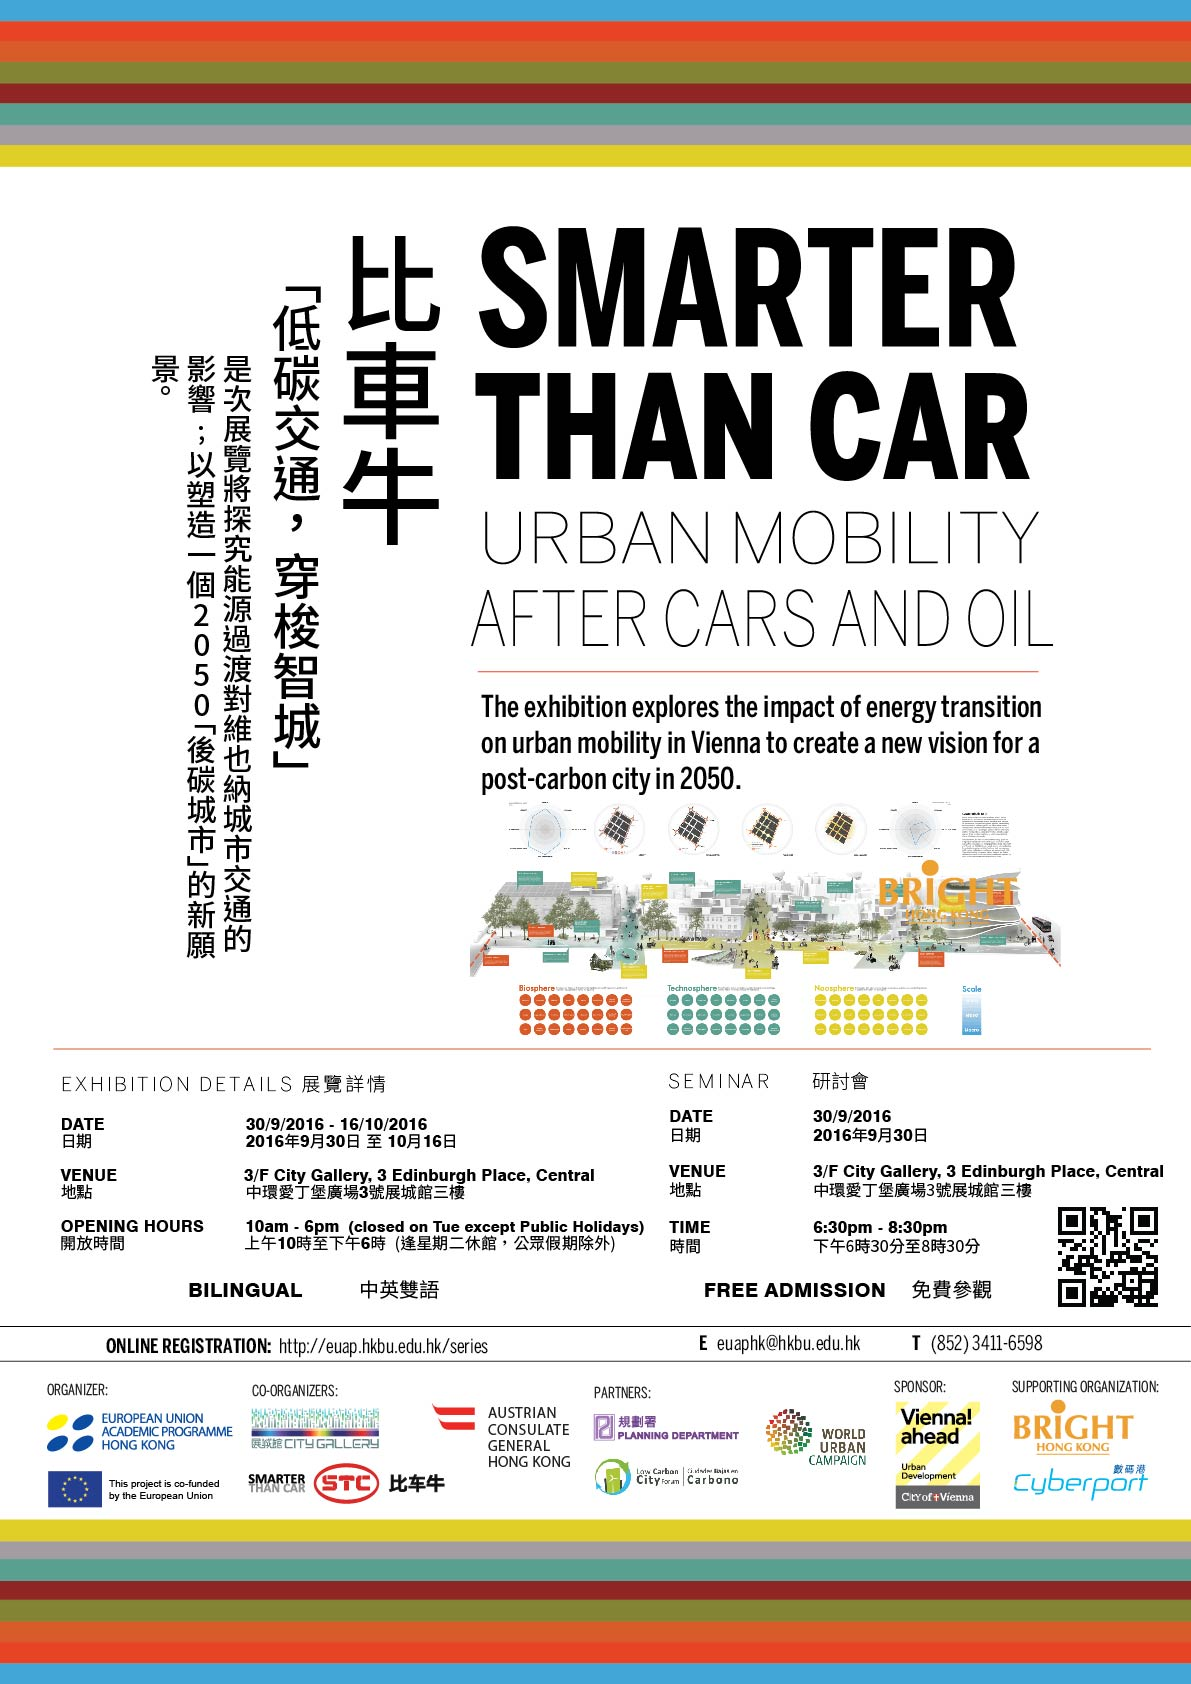 [EXHIBITION 展覽]Hong Kong - Vienna Dialogue: Smarter Than Car - Urban Mobility After Cars and Oil 香港 - 維也納對話:比車牛 - 低碳交通.穿梭智城